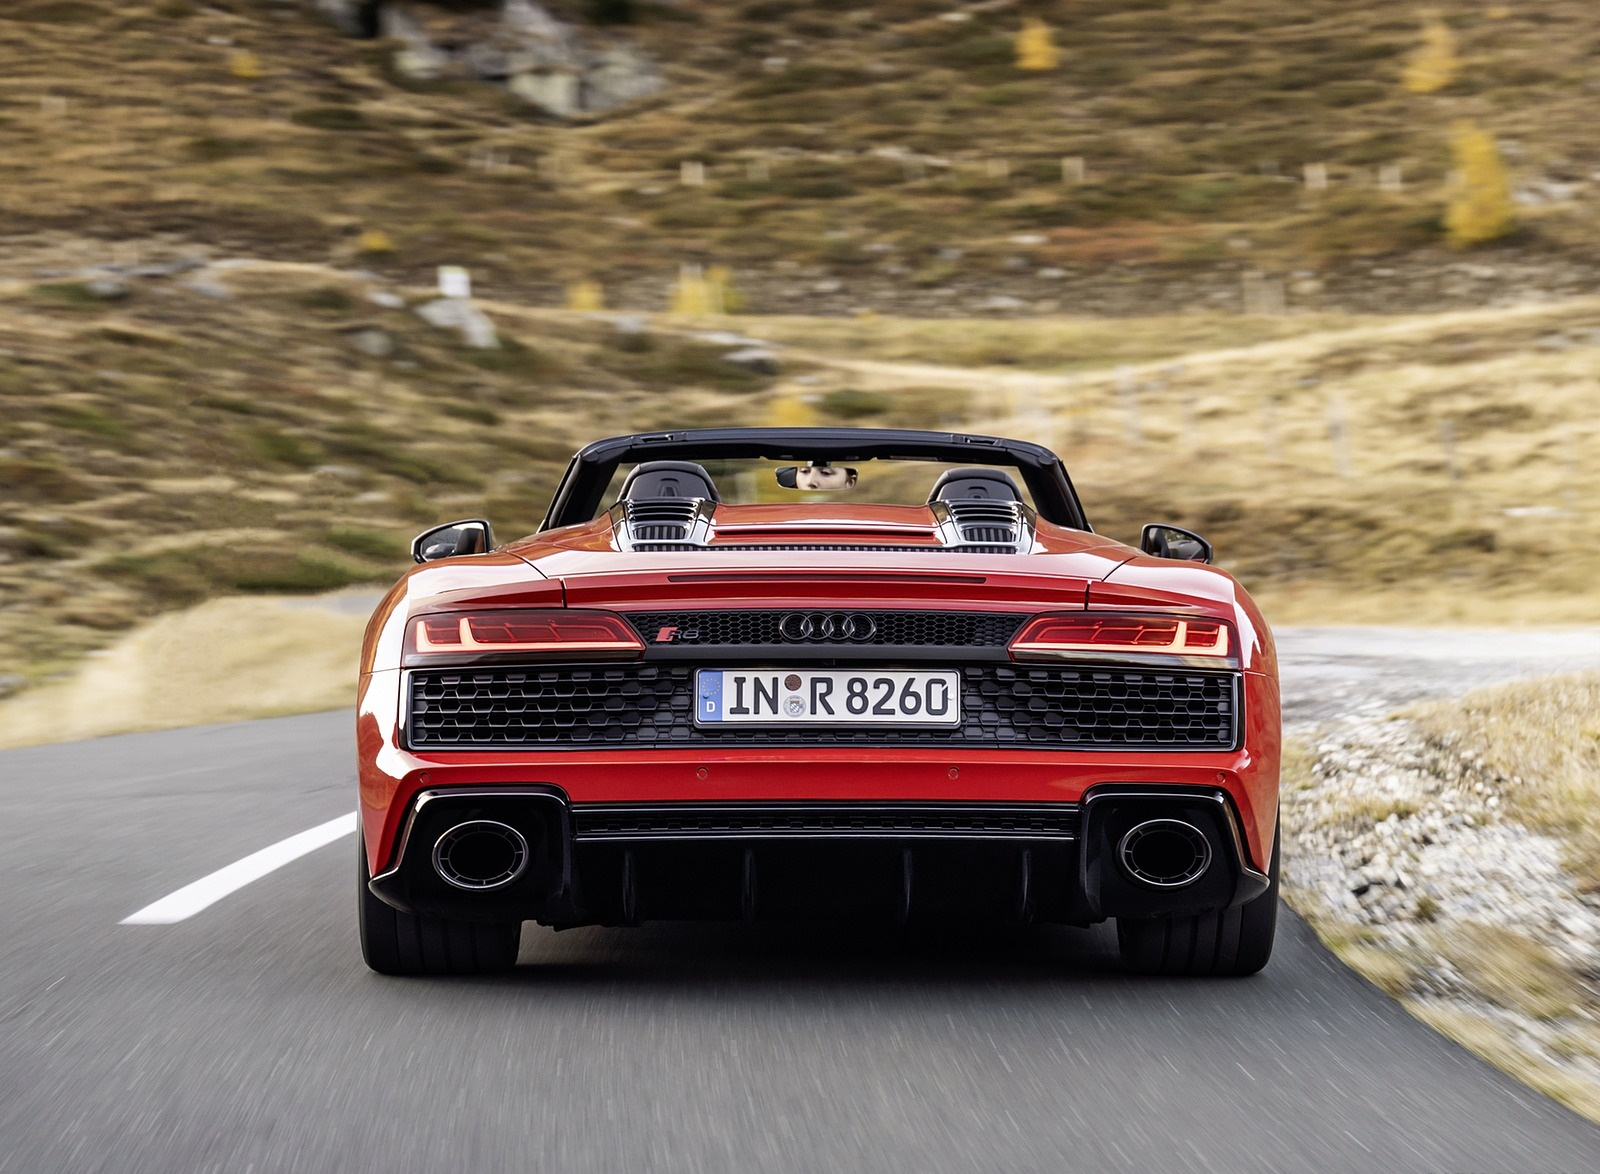 2020 Audi R8 V10 RWD Spyder (Color: Tango Red) Rear Wallpapers (6)